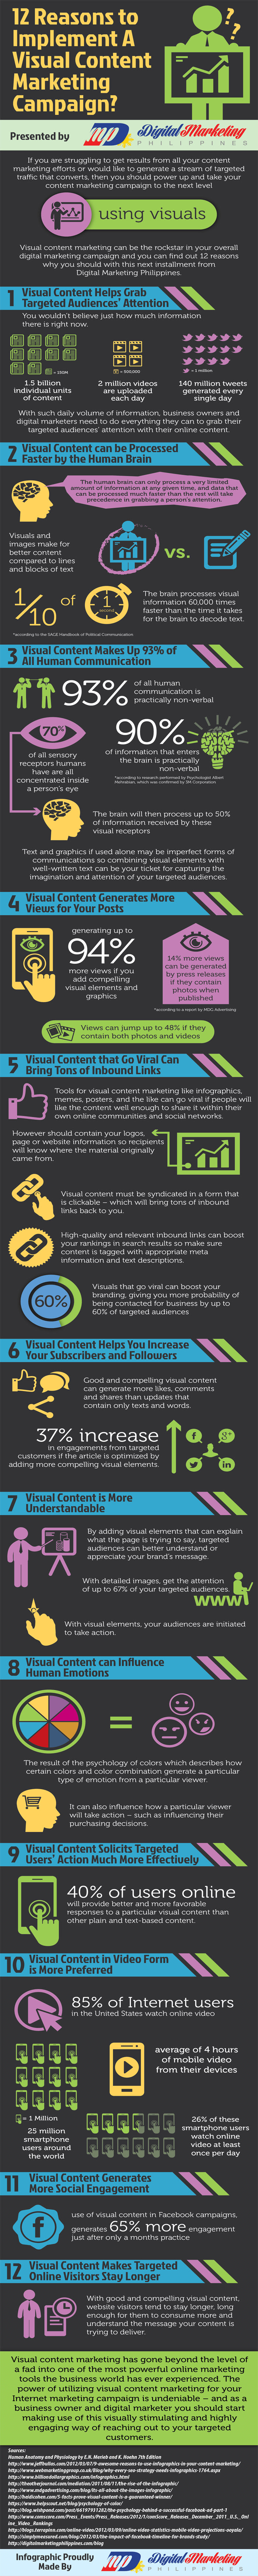 12 Reasons to Implement A Visual Content Marketing Campaign (Infographic) image 12 Reasons to Implement A Visual Content Marketing Campaign